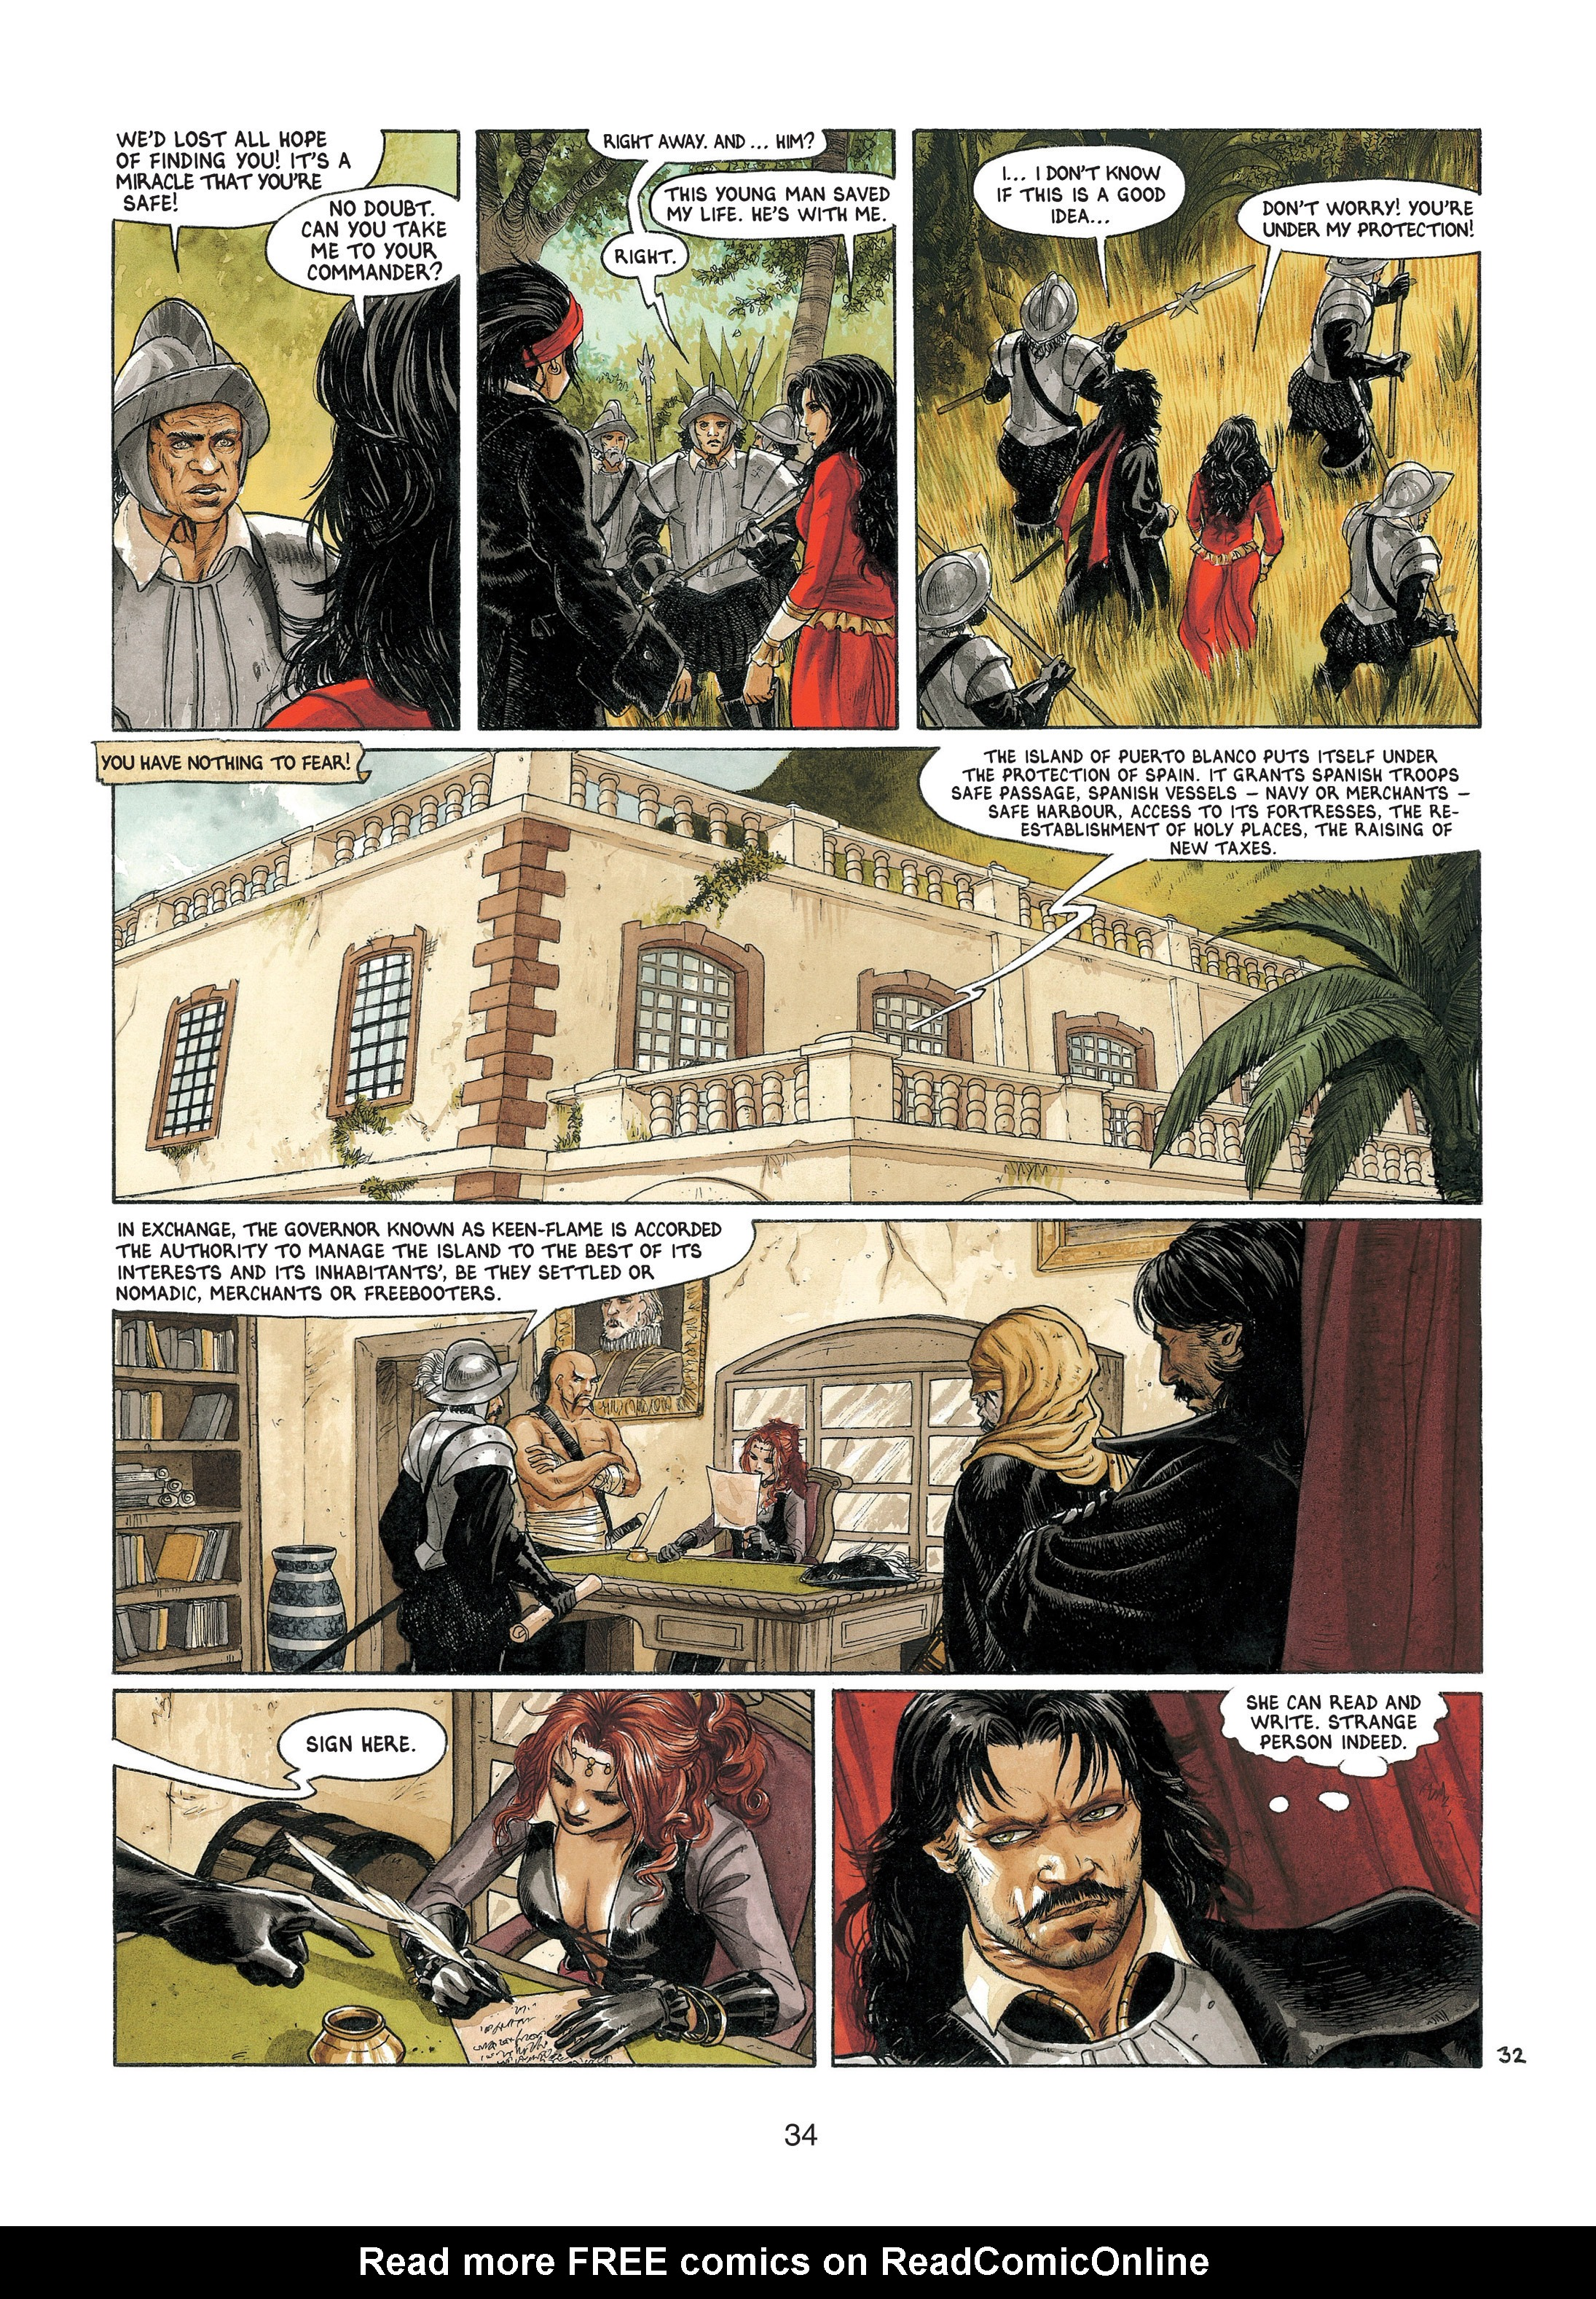 Read online Barracuda comic -  Issue #4 - 35